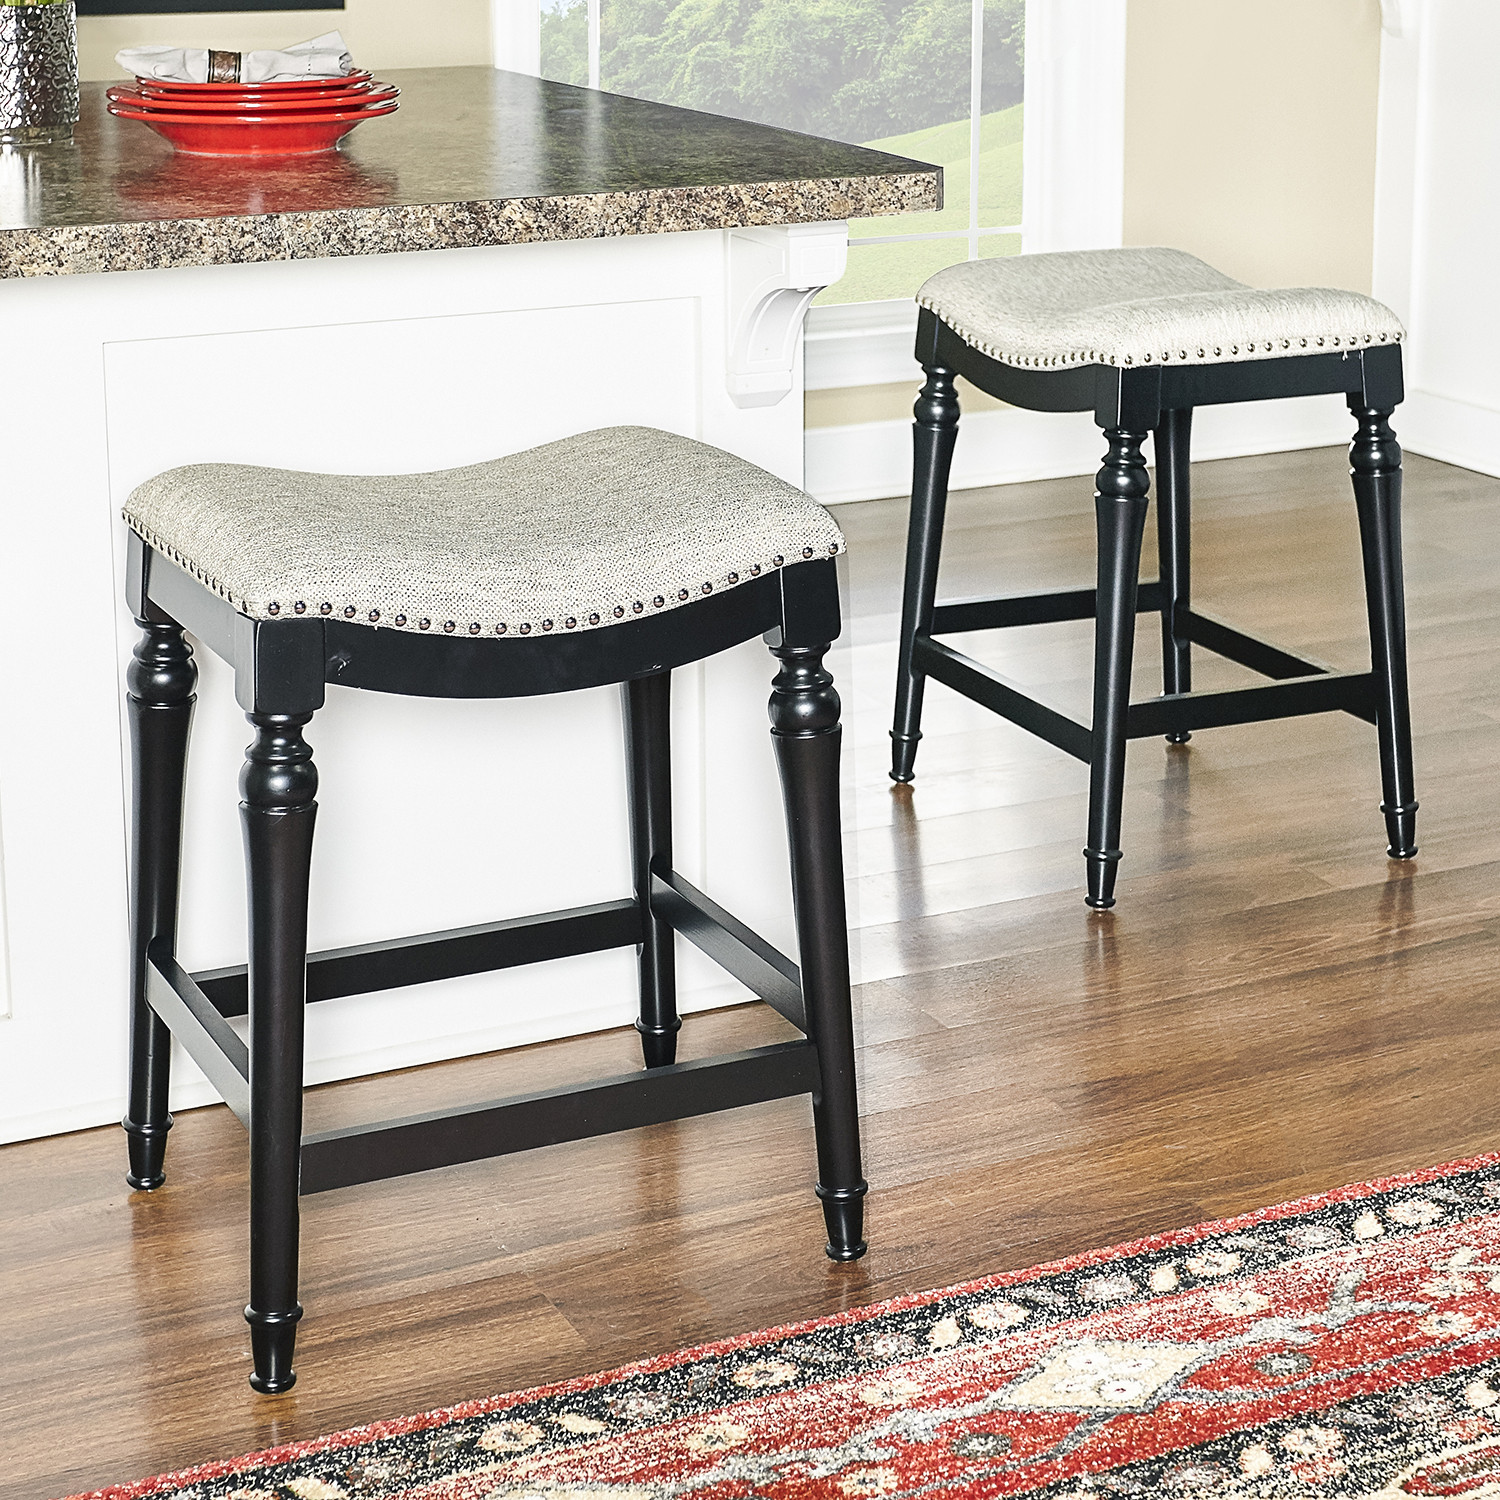 Brilliant Hayes Counter Stool In Grey Fabric W Nailhead On Black Legs By Powell Lamtechconsult Wood Chair Design Ideas Lamtechconsultcom